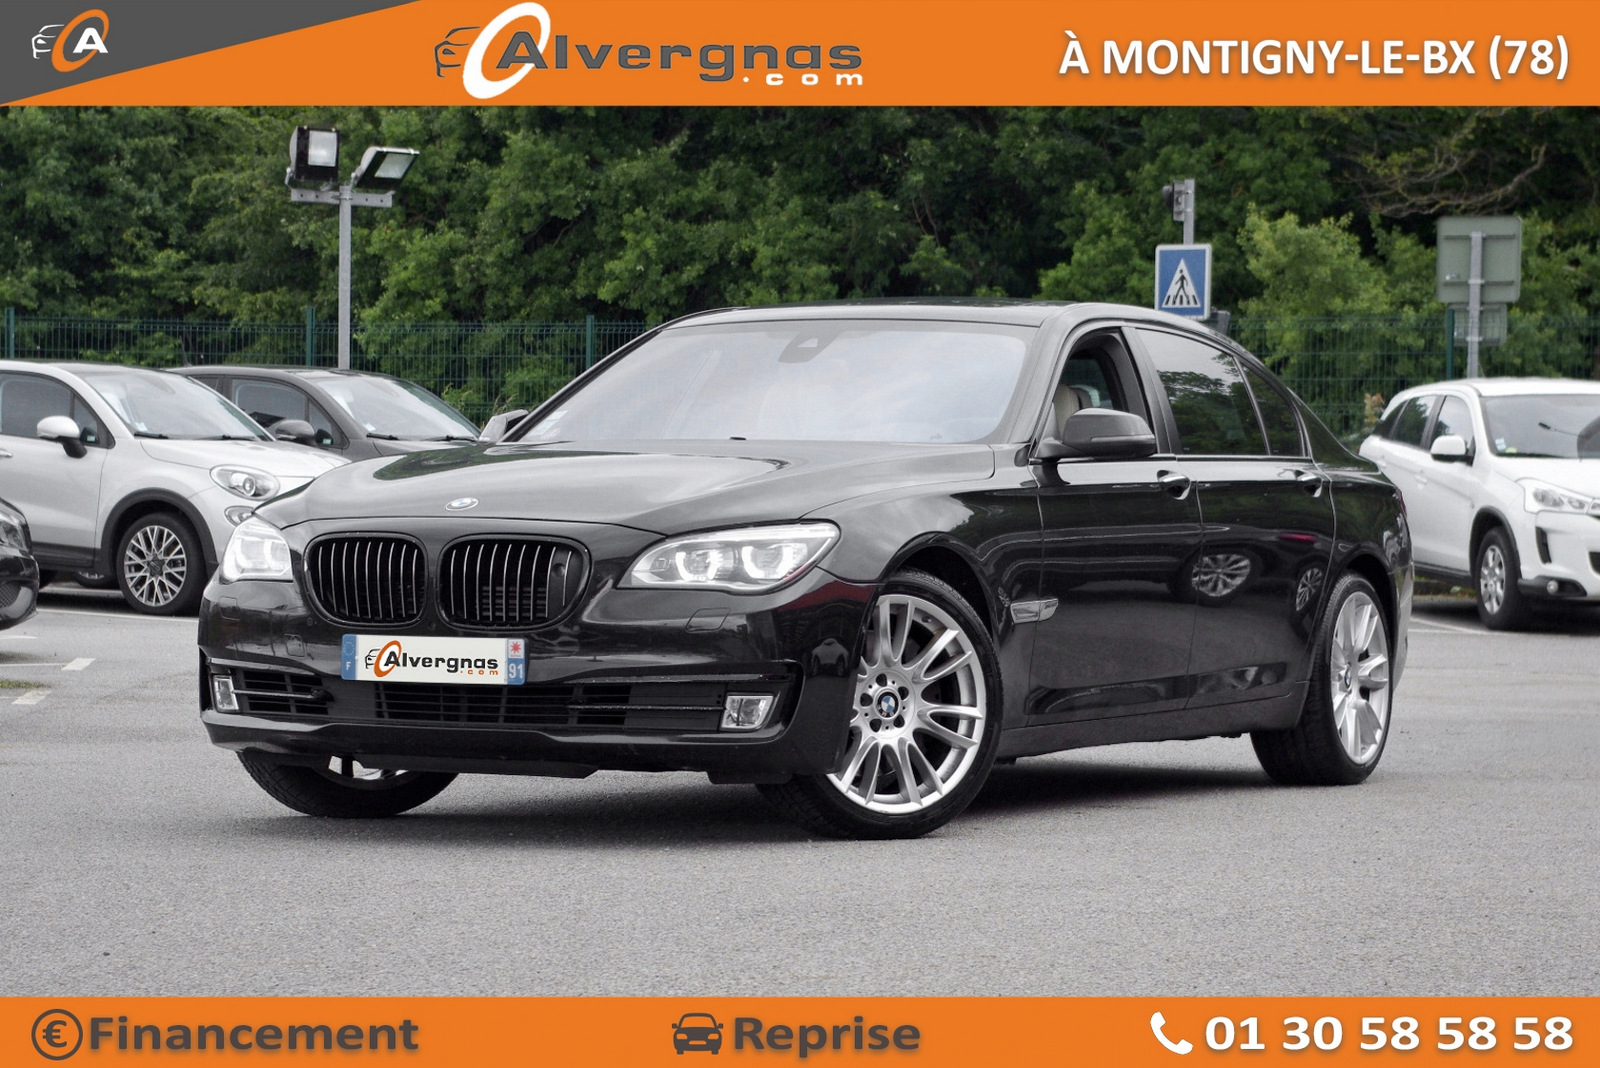 BMW SERIE 7 d'occasion sur Paris